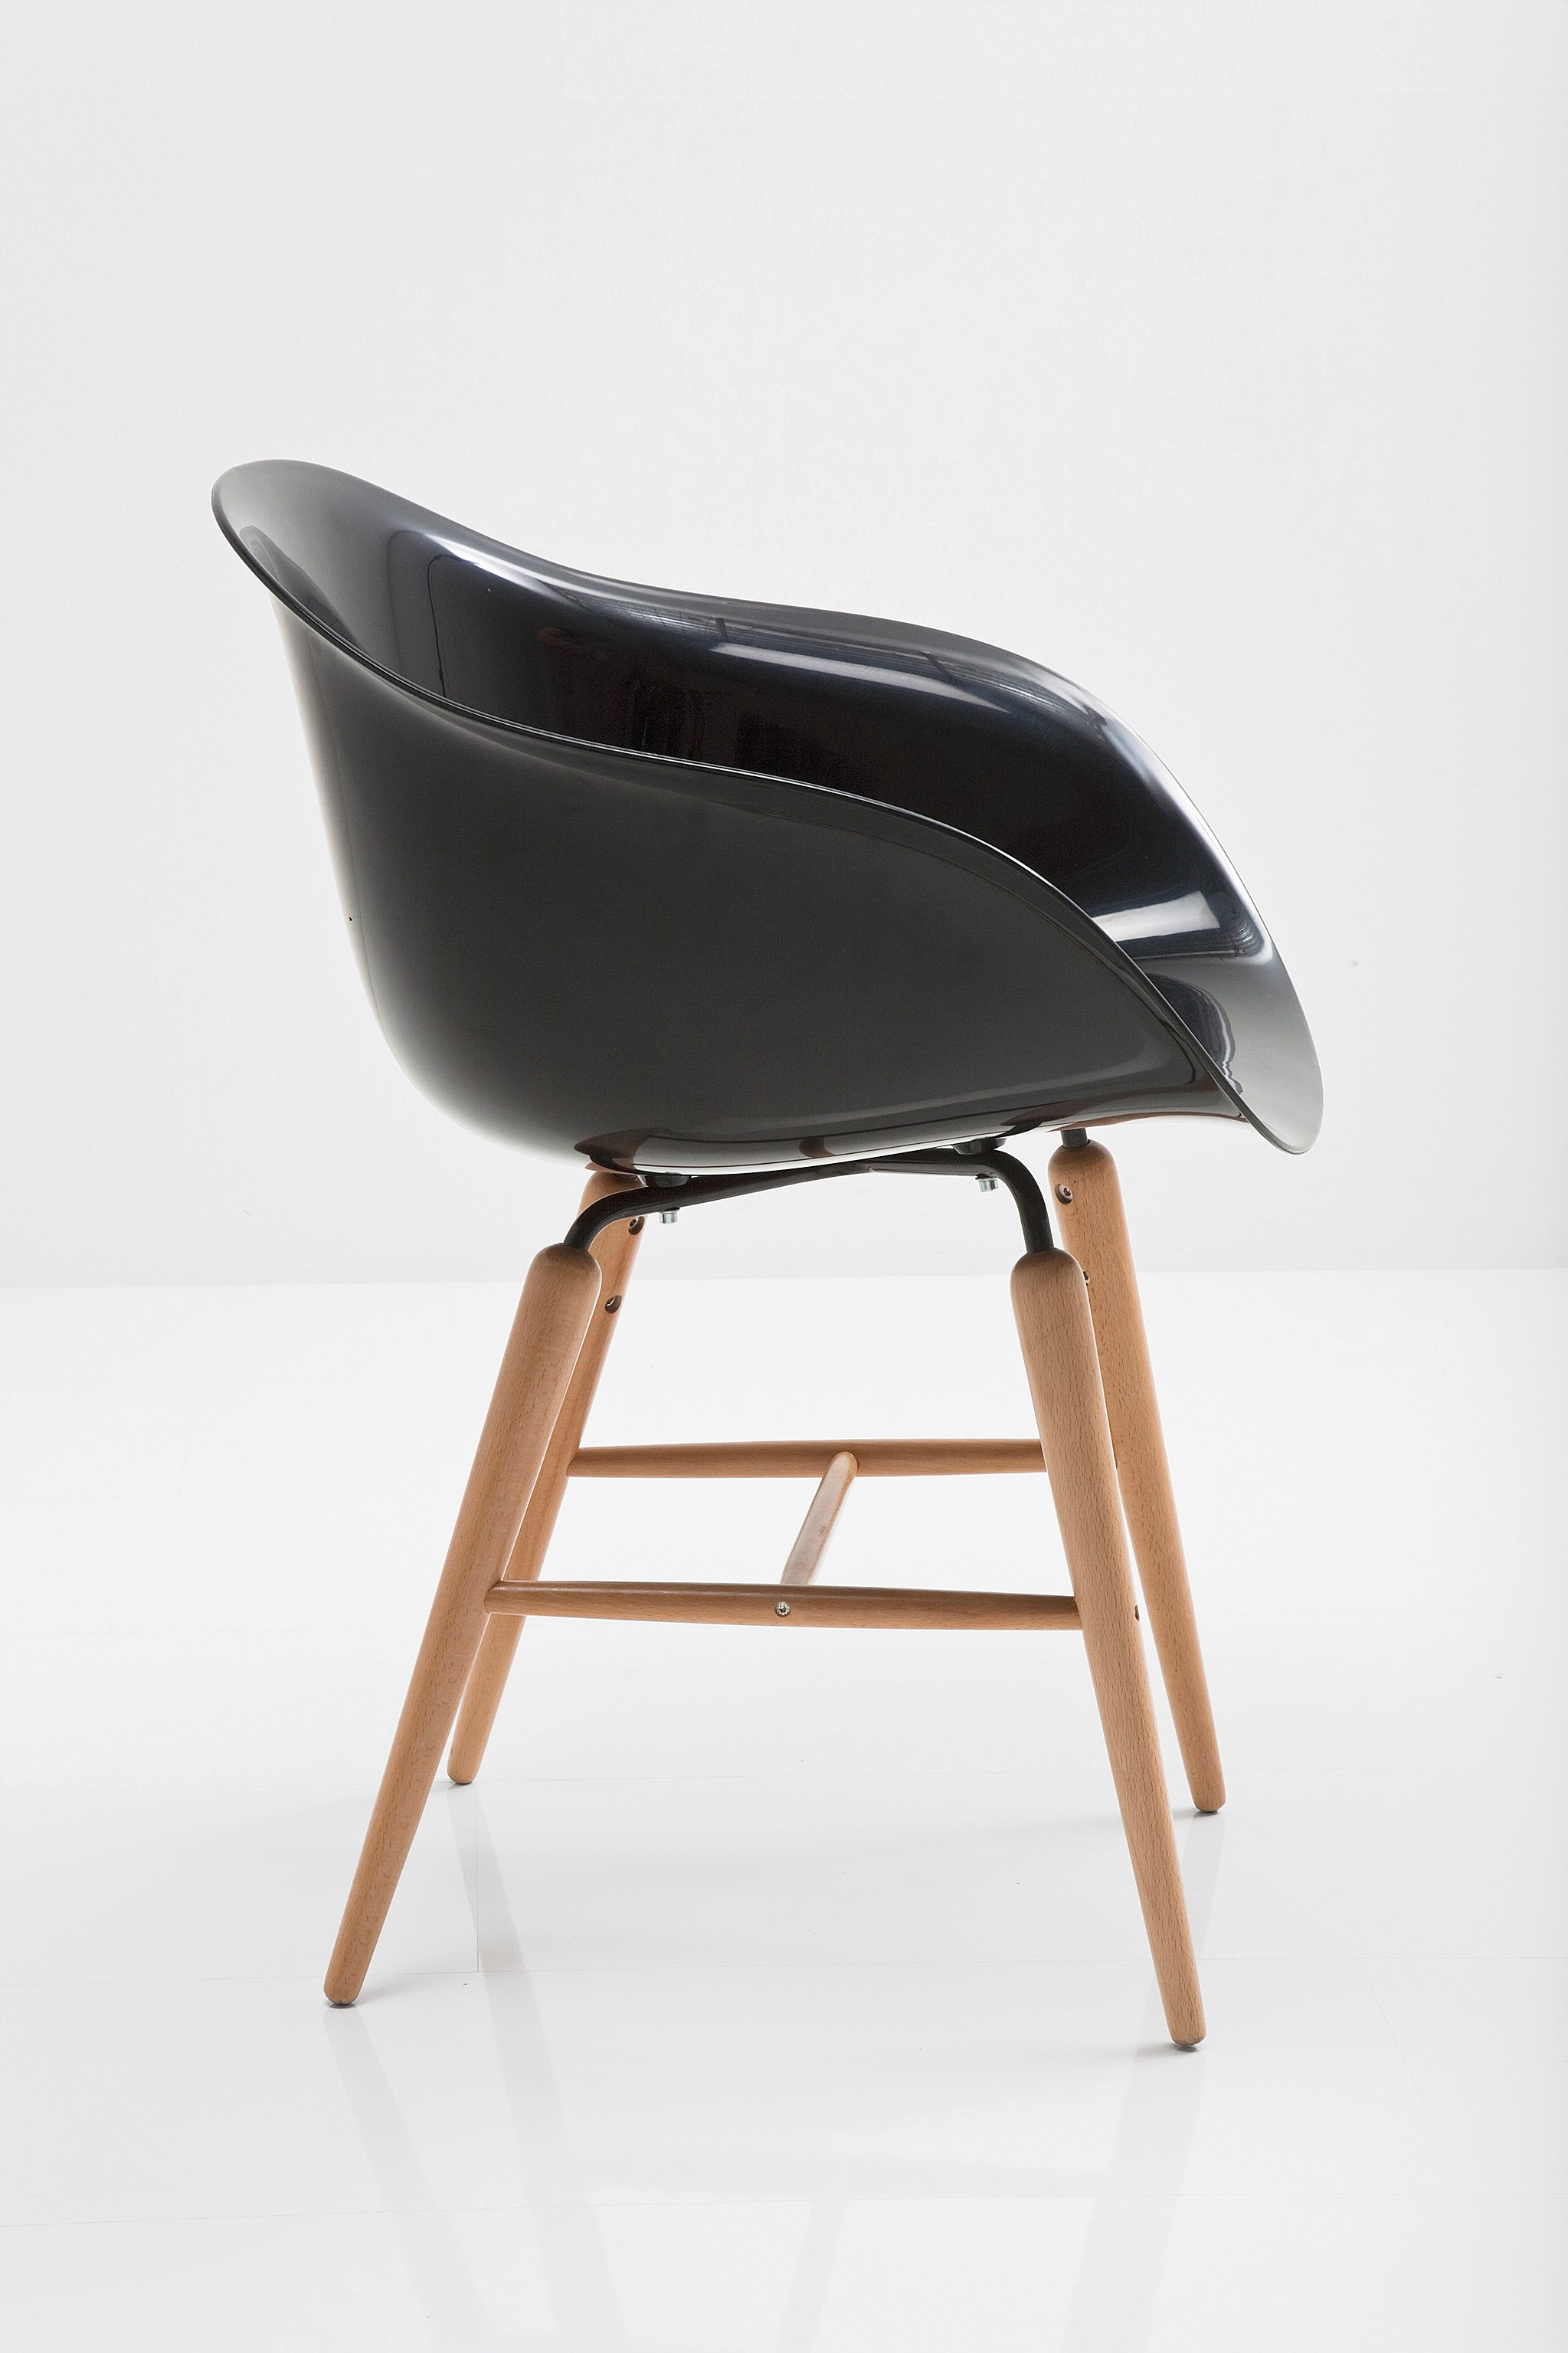 Stuhl forum wood schwarz by kare design ebay for Stuhl kare design